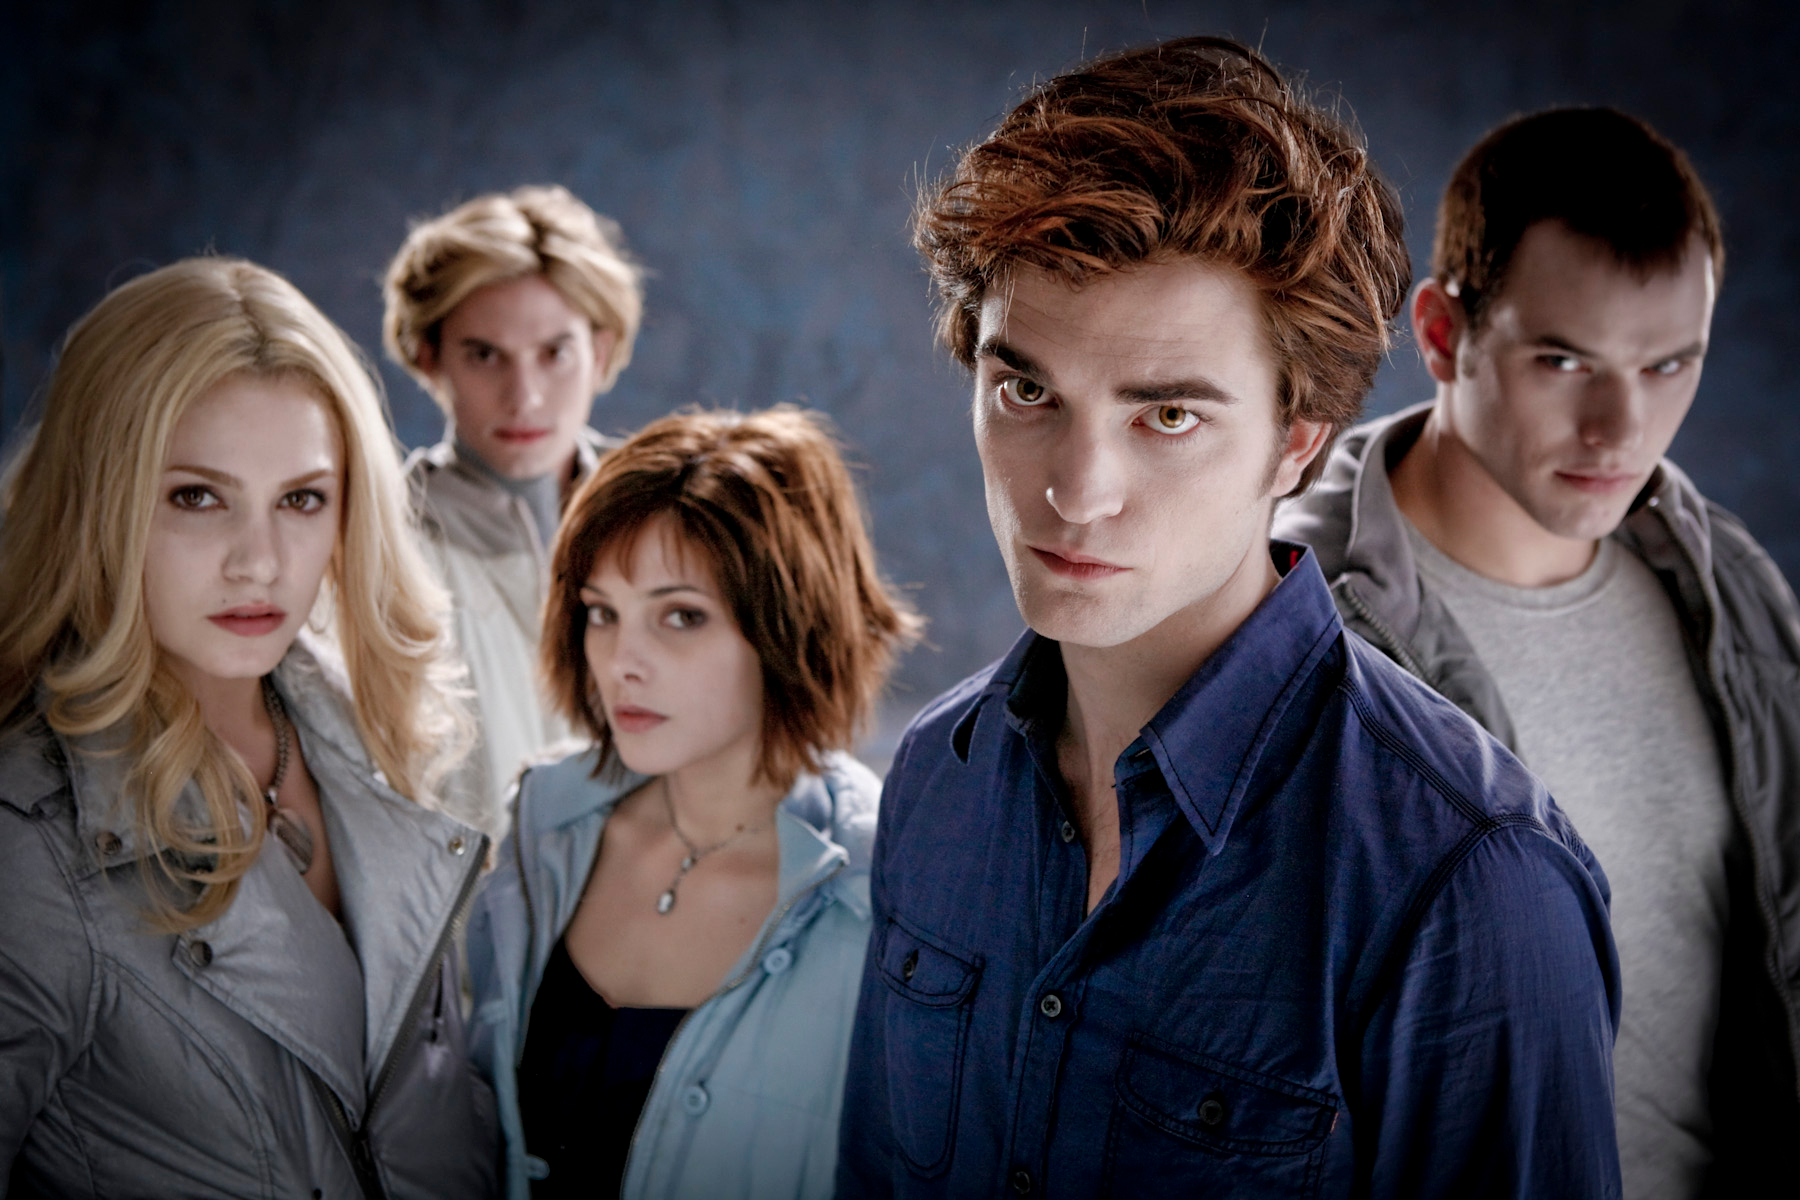 Cast of the film Twilight